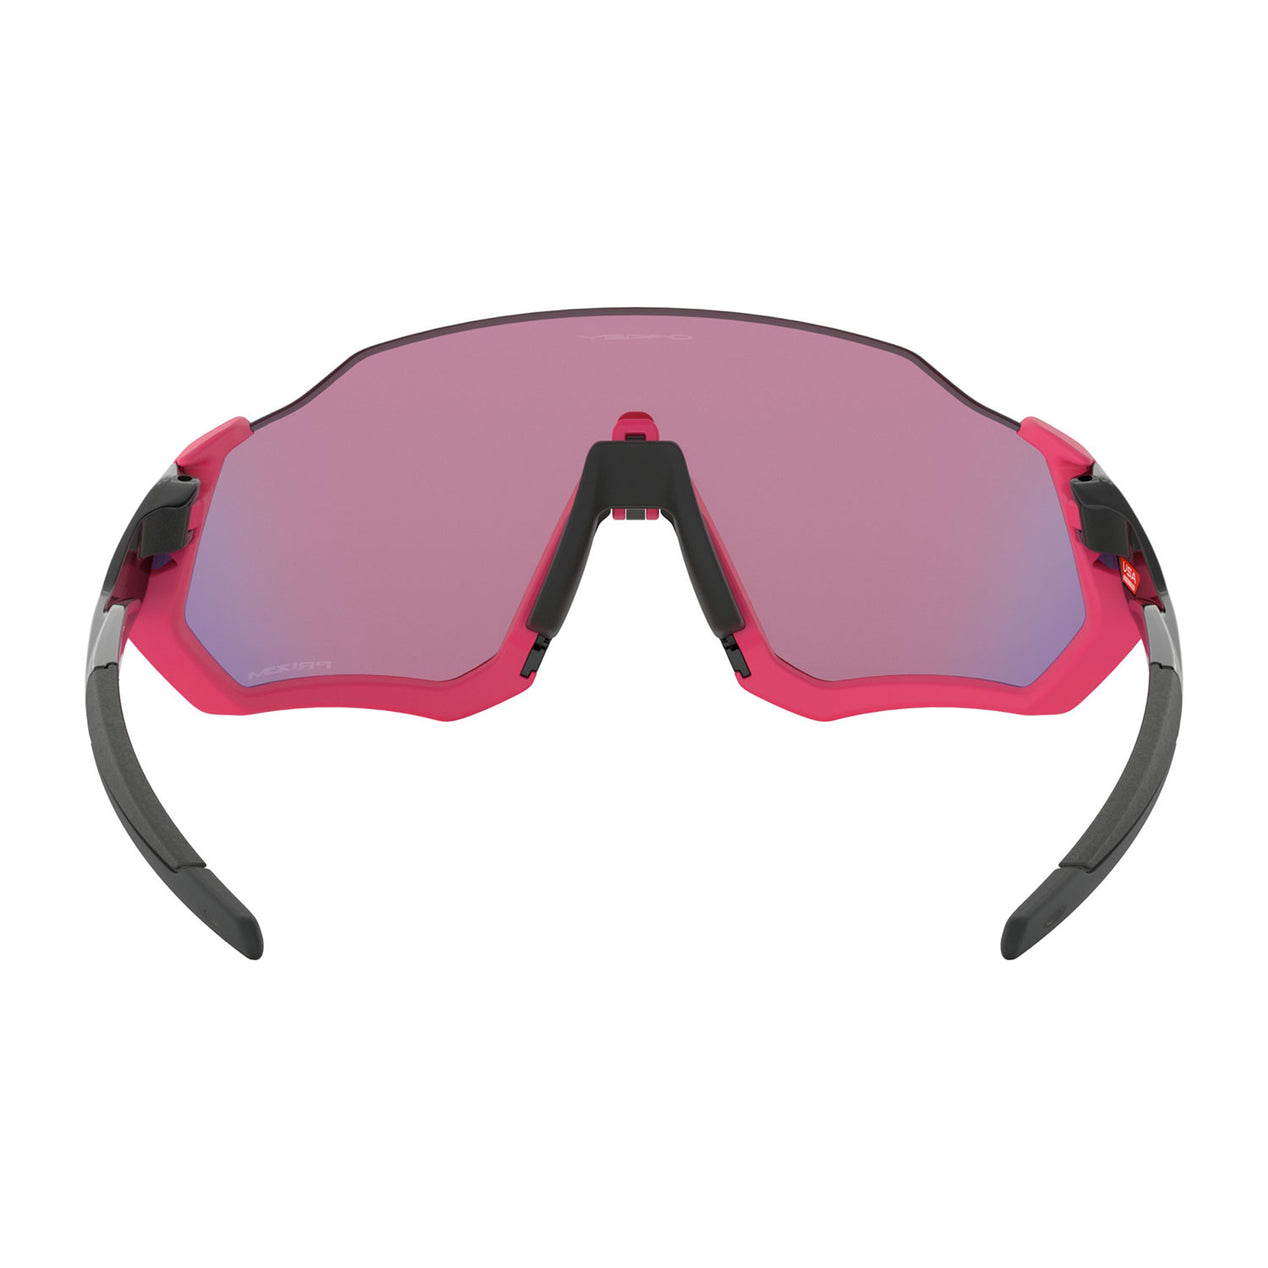 cf621dc5dd ... Flight Jacket - Polished Black Neon Pink - Prizm Road Lens Sunglasses  thumb ...